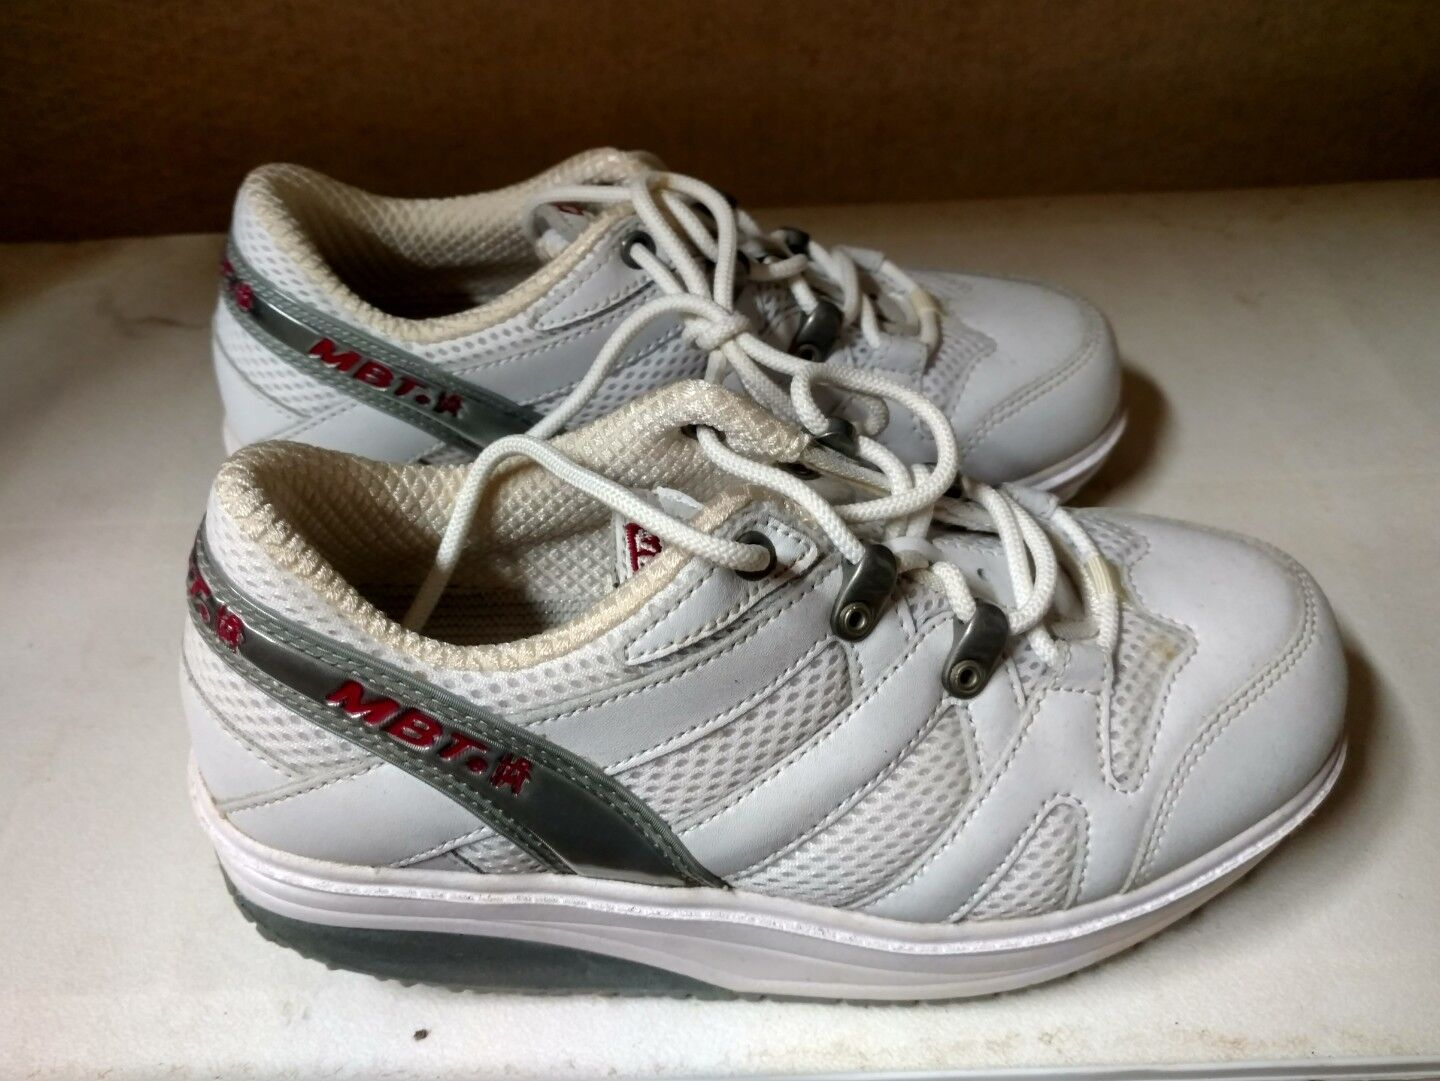 MBT Leo Womens size 4 White Walking shoes - No Box good shape nursing shape ups